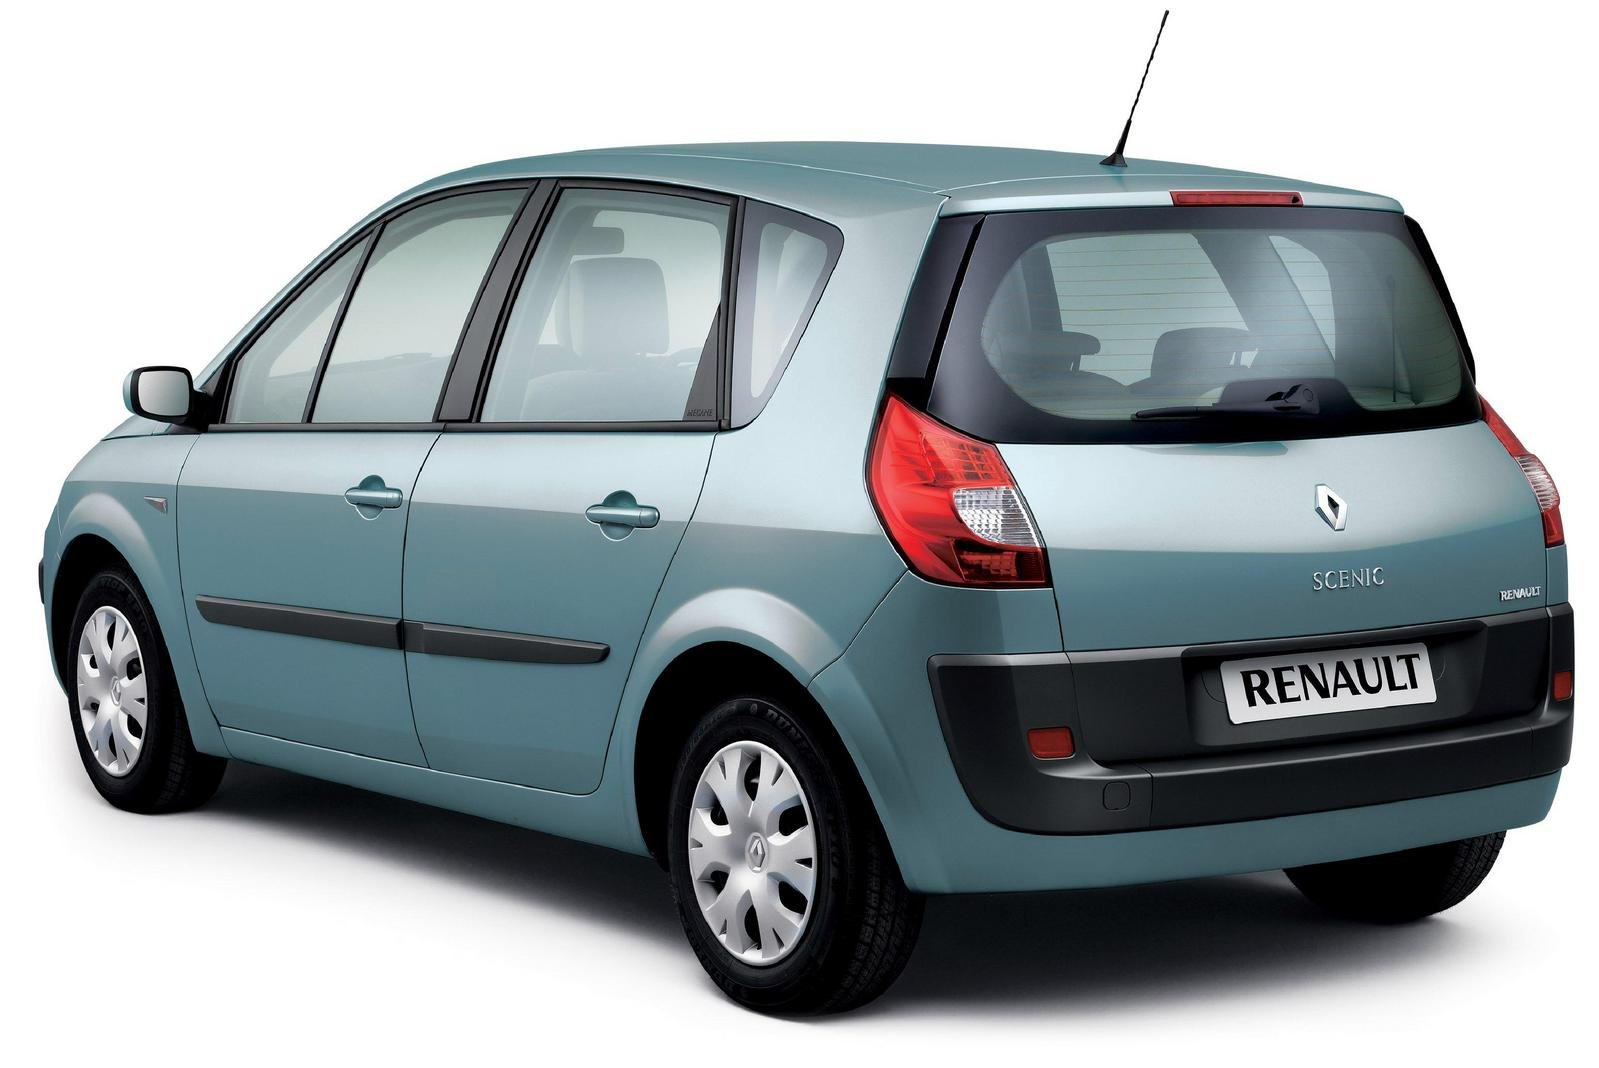 2006 renault scenic picture 86974 car review top speed. Black Bedroom Furniture Sets. Home Design Ideas